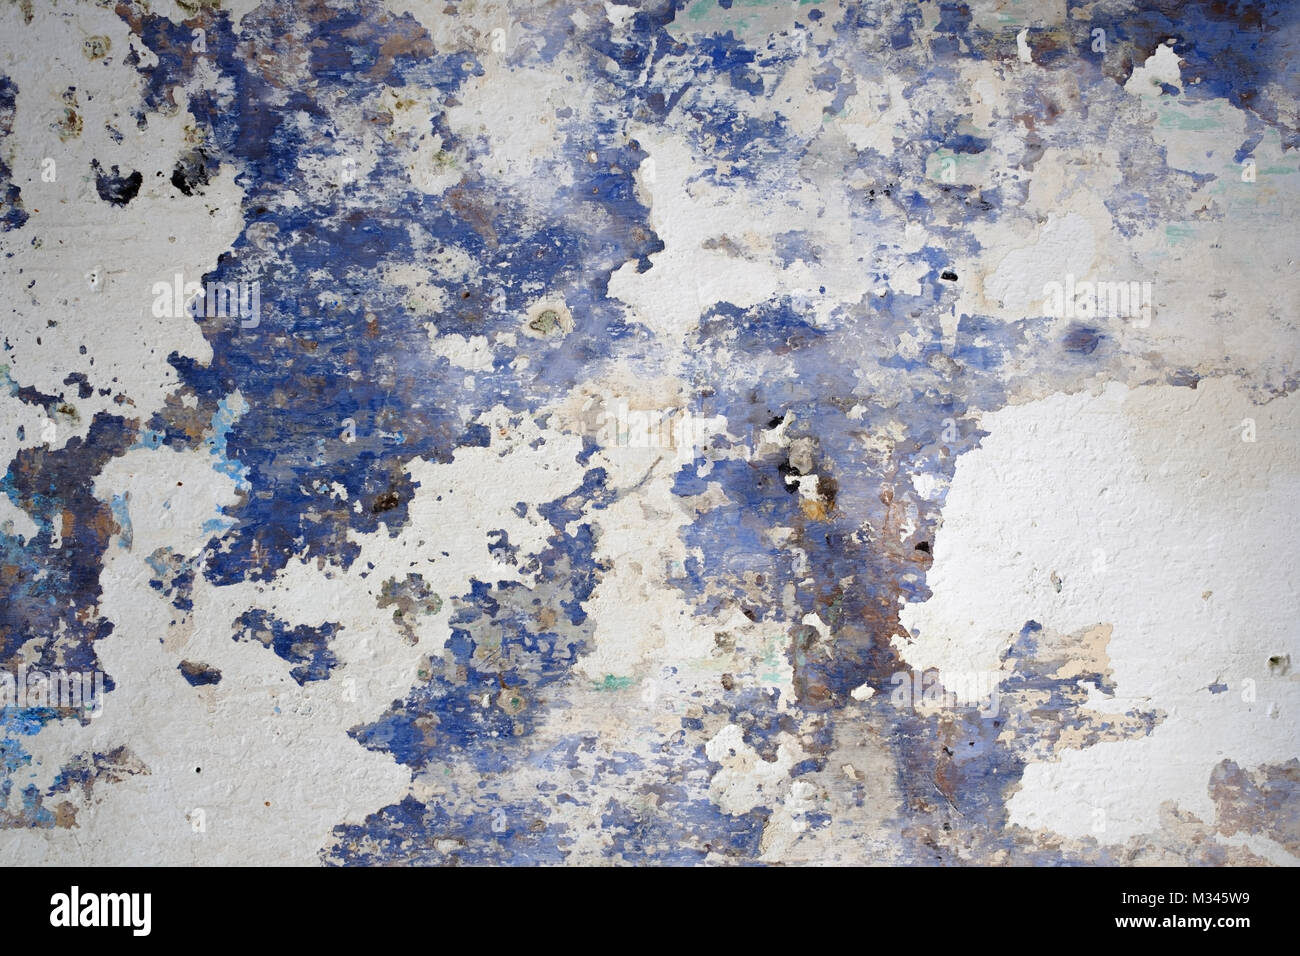 436d2f2a0 Beautiful Abstract Grunge Decorative Navy Blue White Wall Background ...